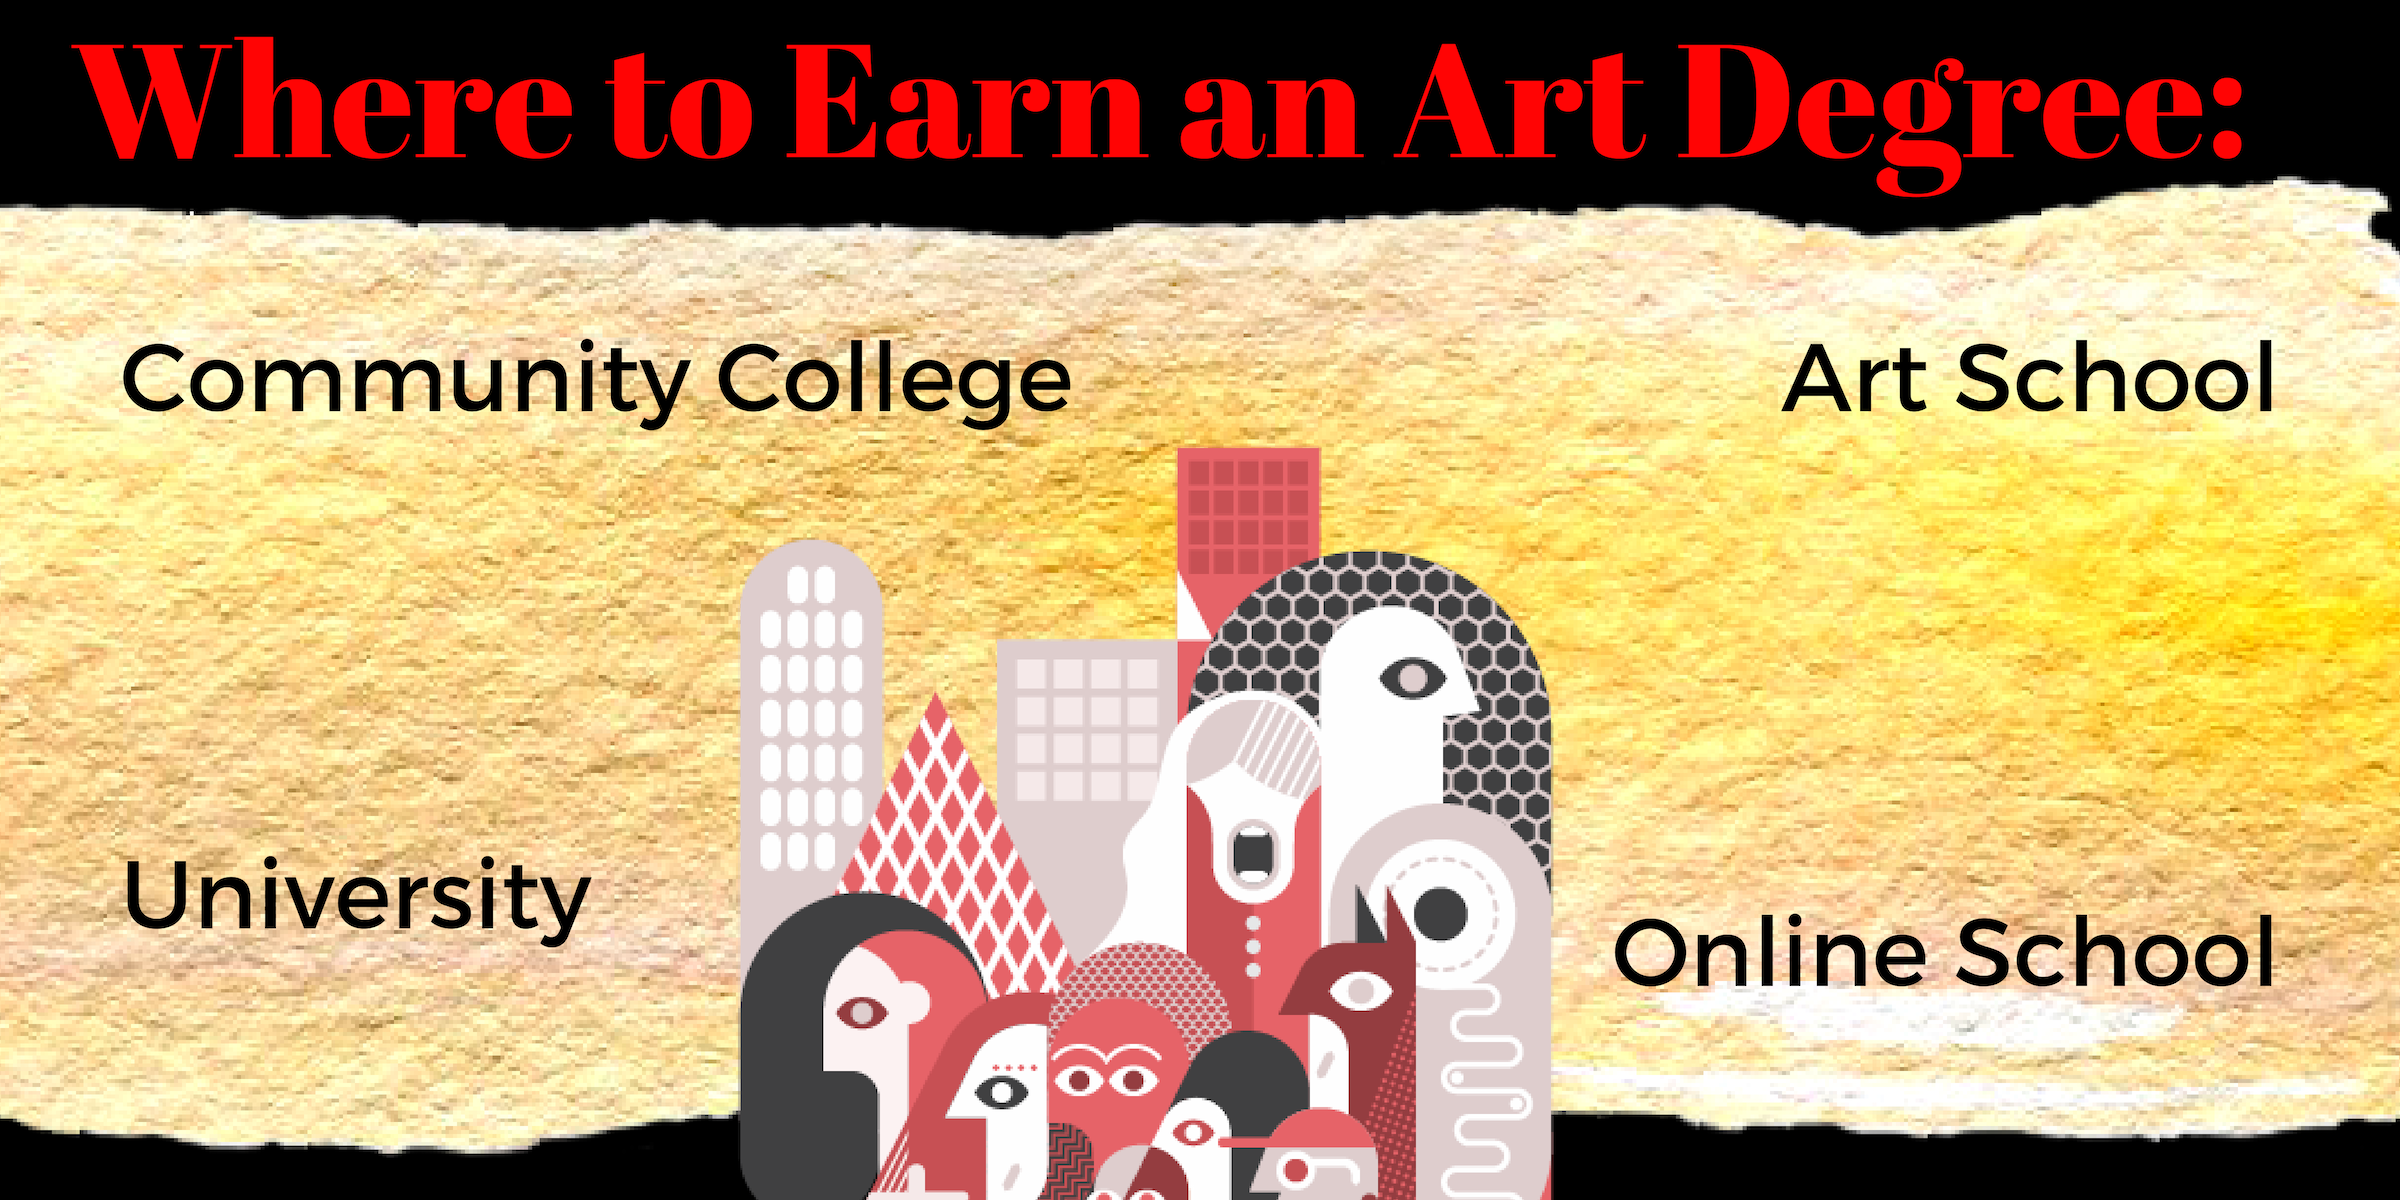 What Can I Do With an Art Degree? - DegreeQuery com